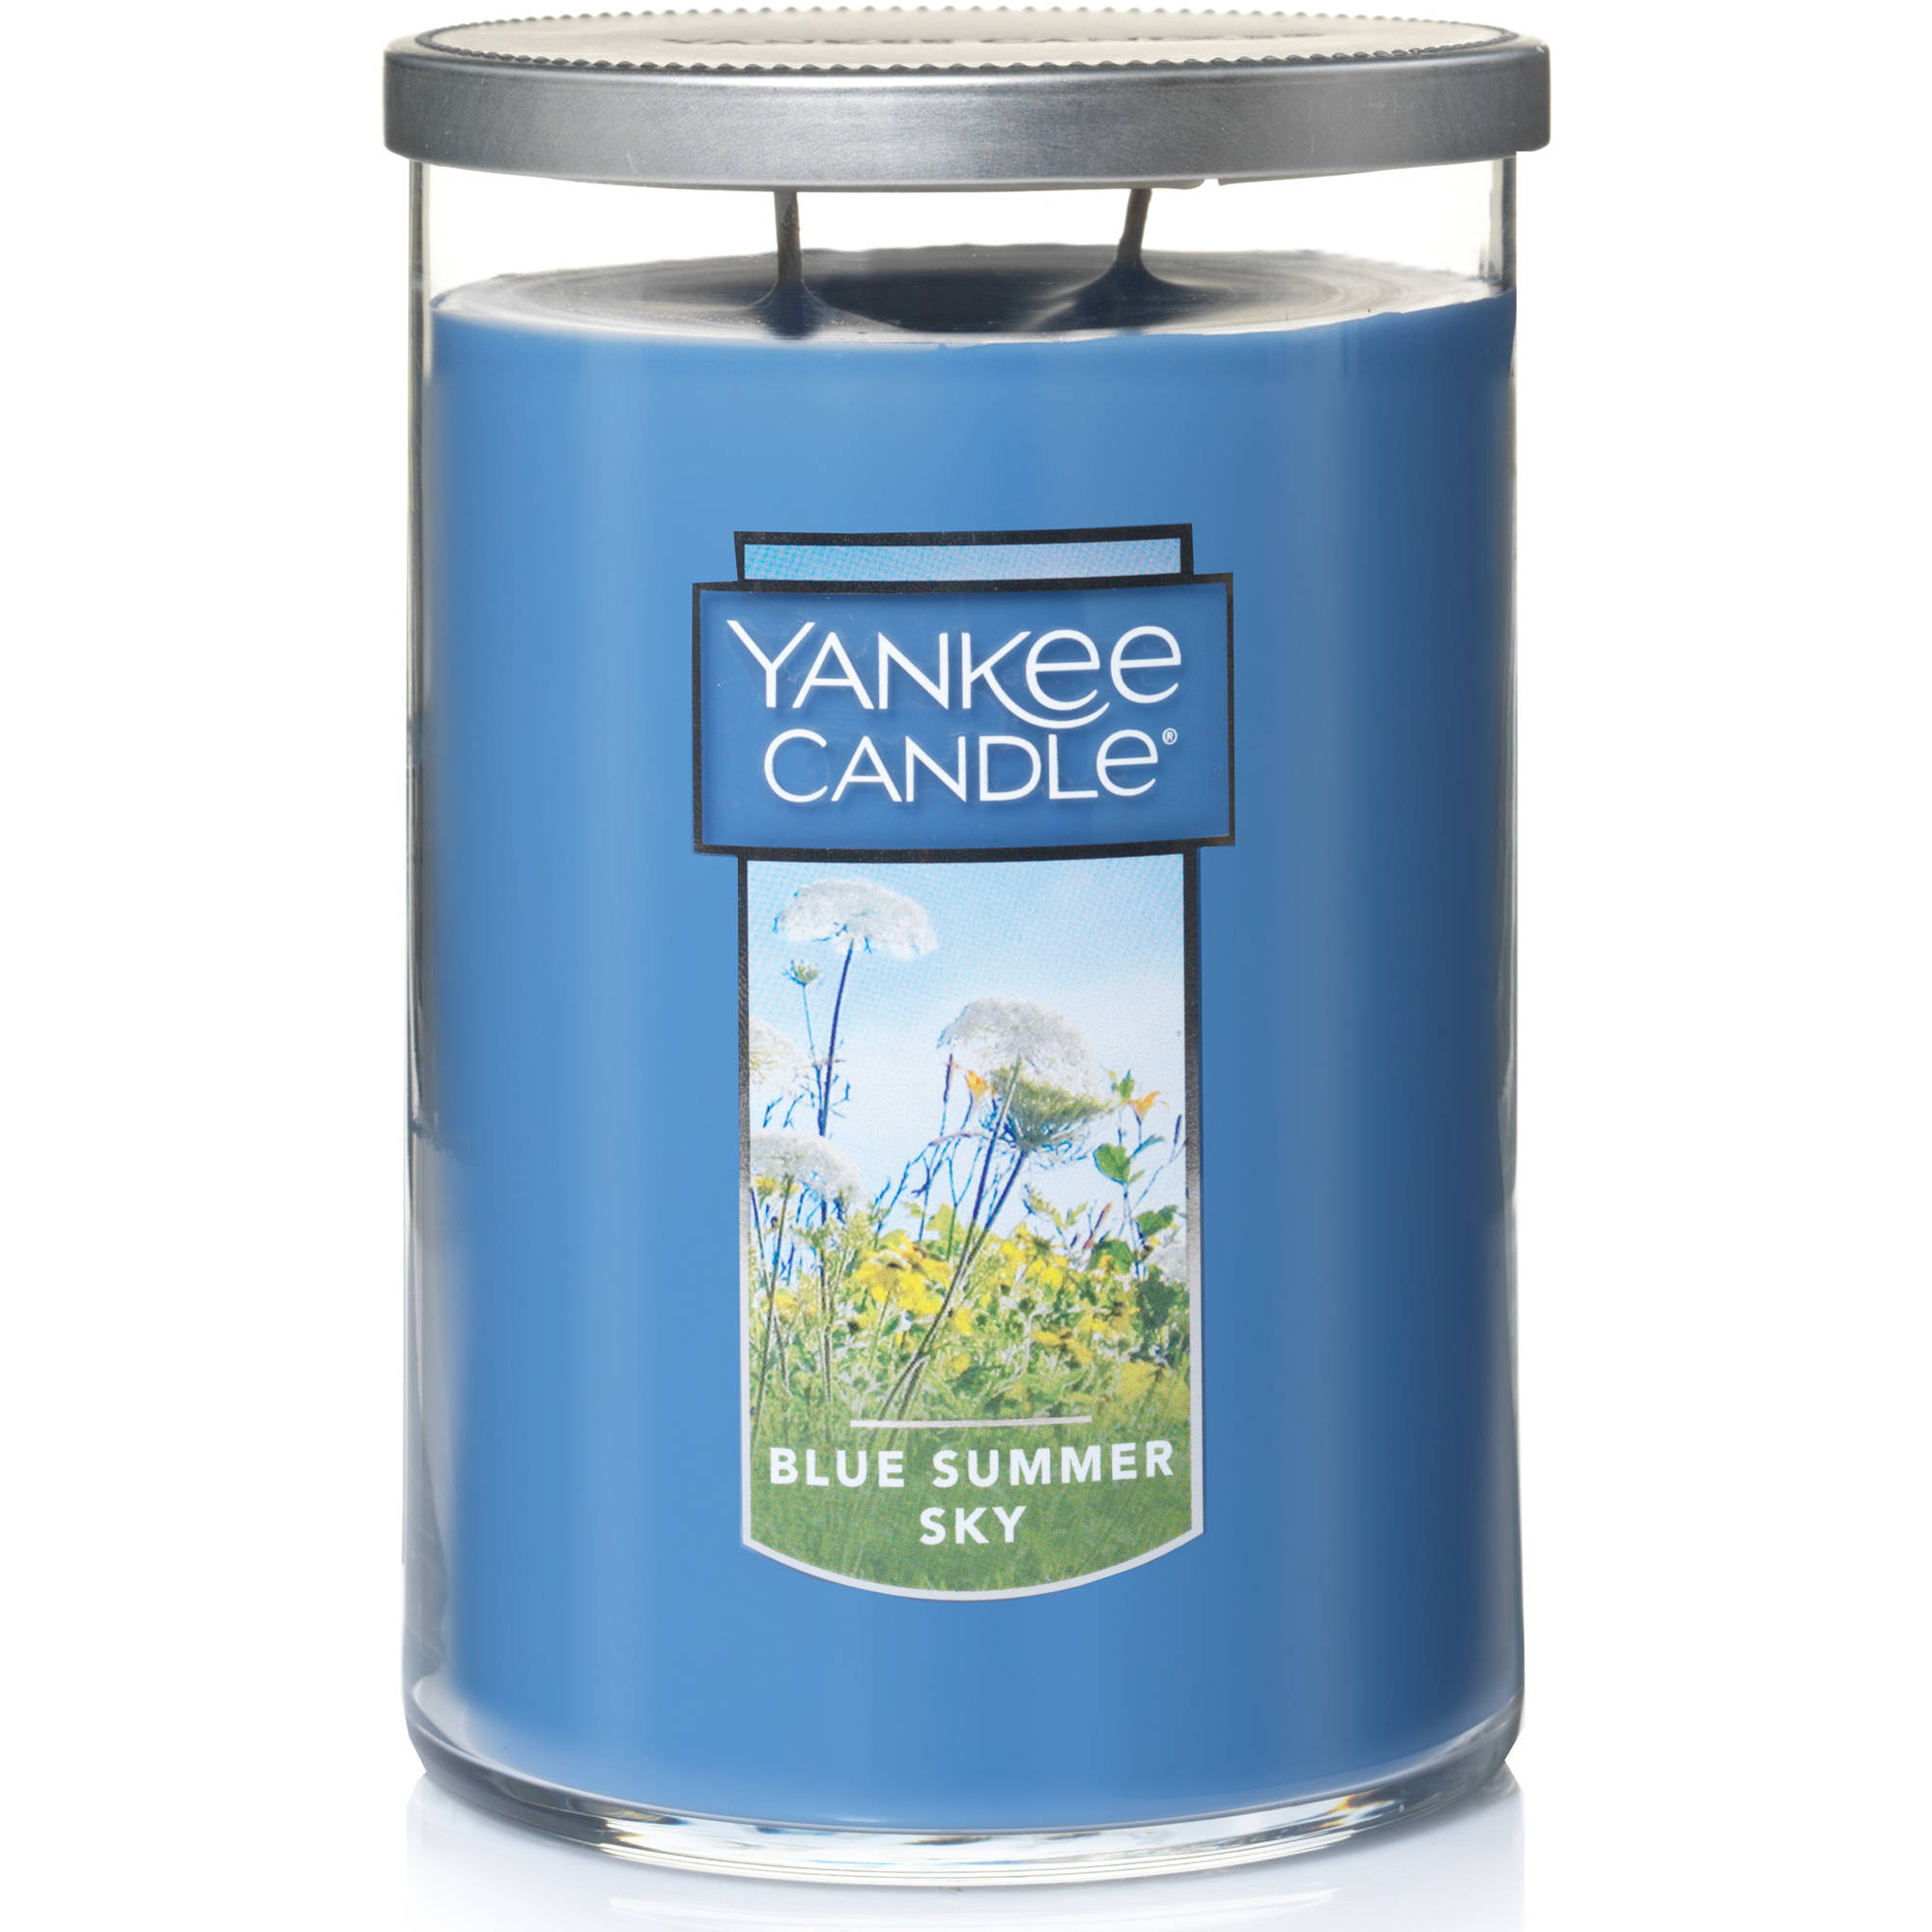 Yankee Candle Large 2-Wick Tumbler Candle, Blue Summer Sky